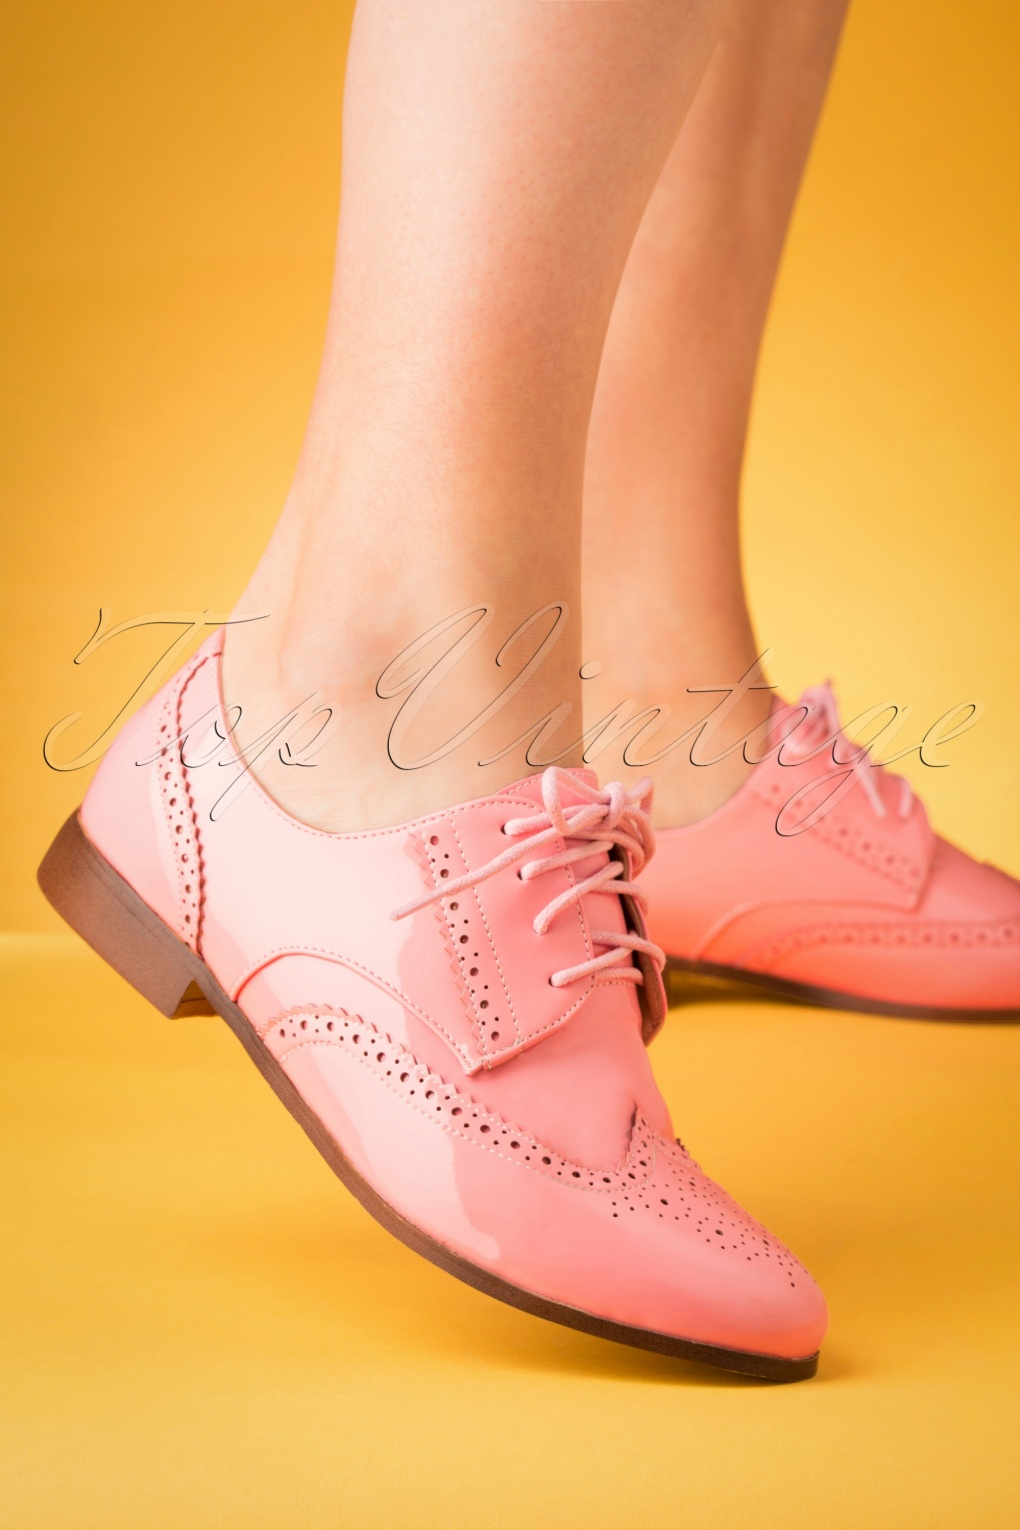 Vintage Style Shoes, Vintage Inspired Shoes 60s Brighton Brogue Shoes in Pastel Pink £64.76 AT vintagedancer.com